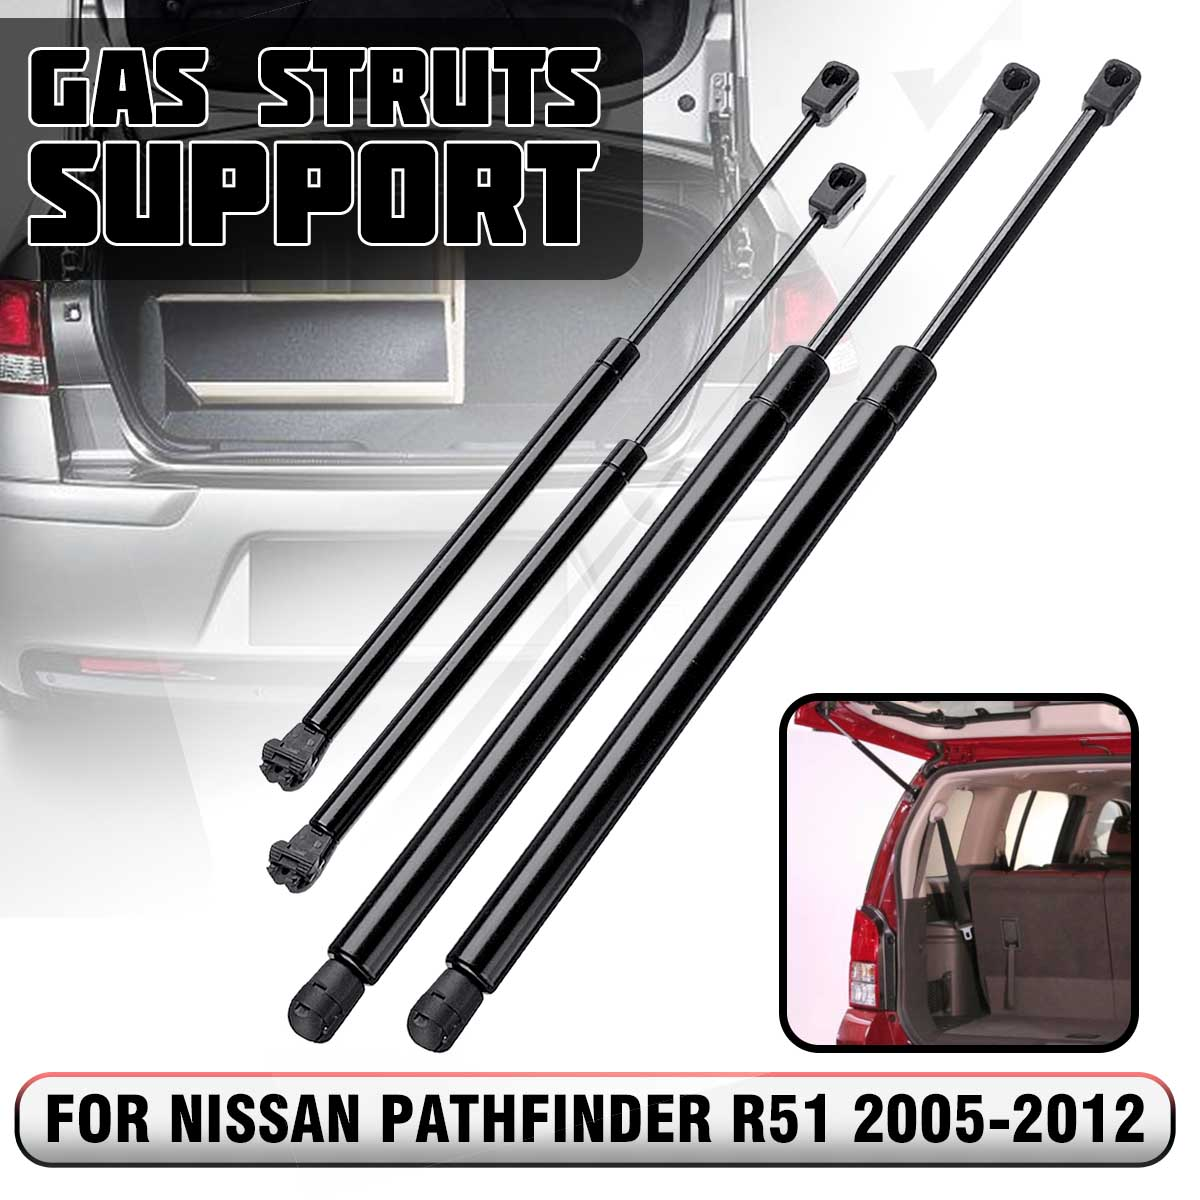 4pcs Rear Window Tailgate Boot Gas Struts Support Bar For Nissan Pathfinder R51 2005 2006 2007 2008 2009 2010 2011 2012